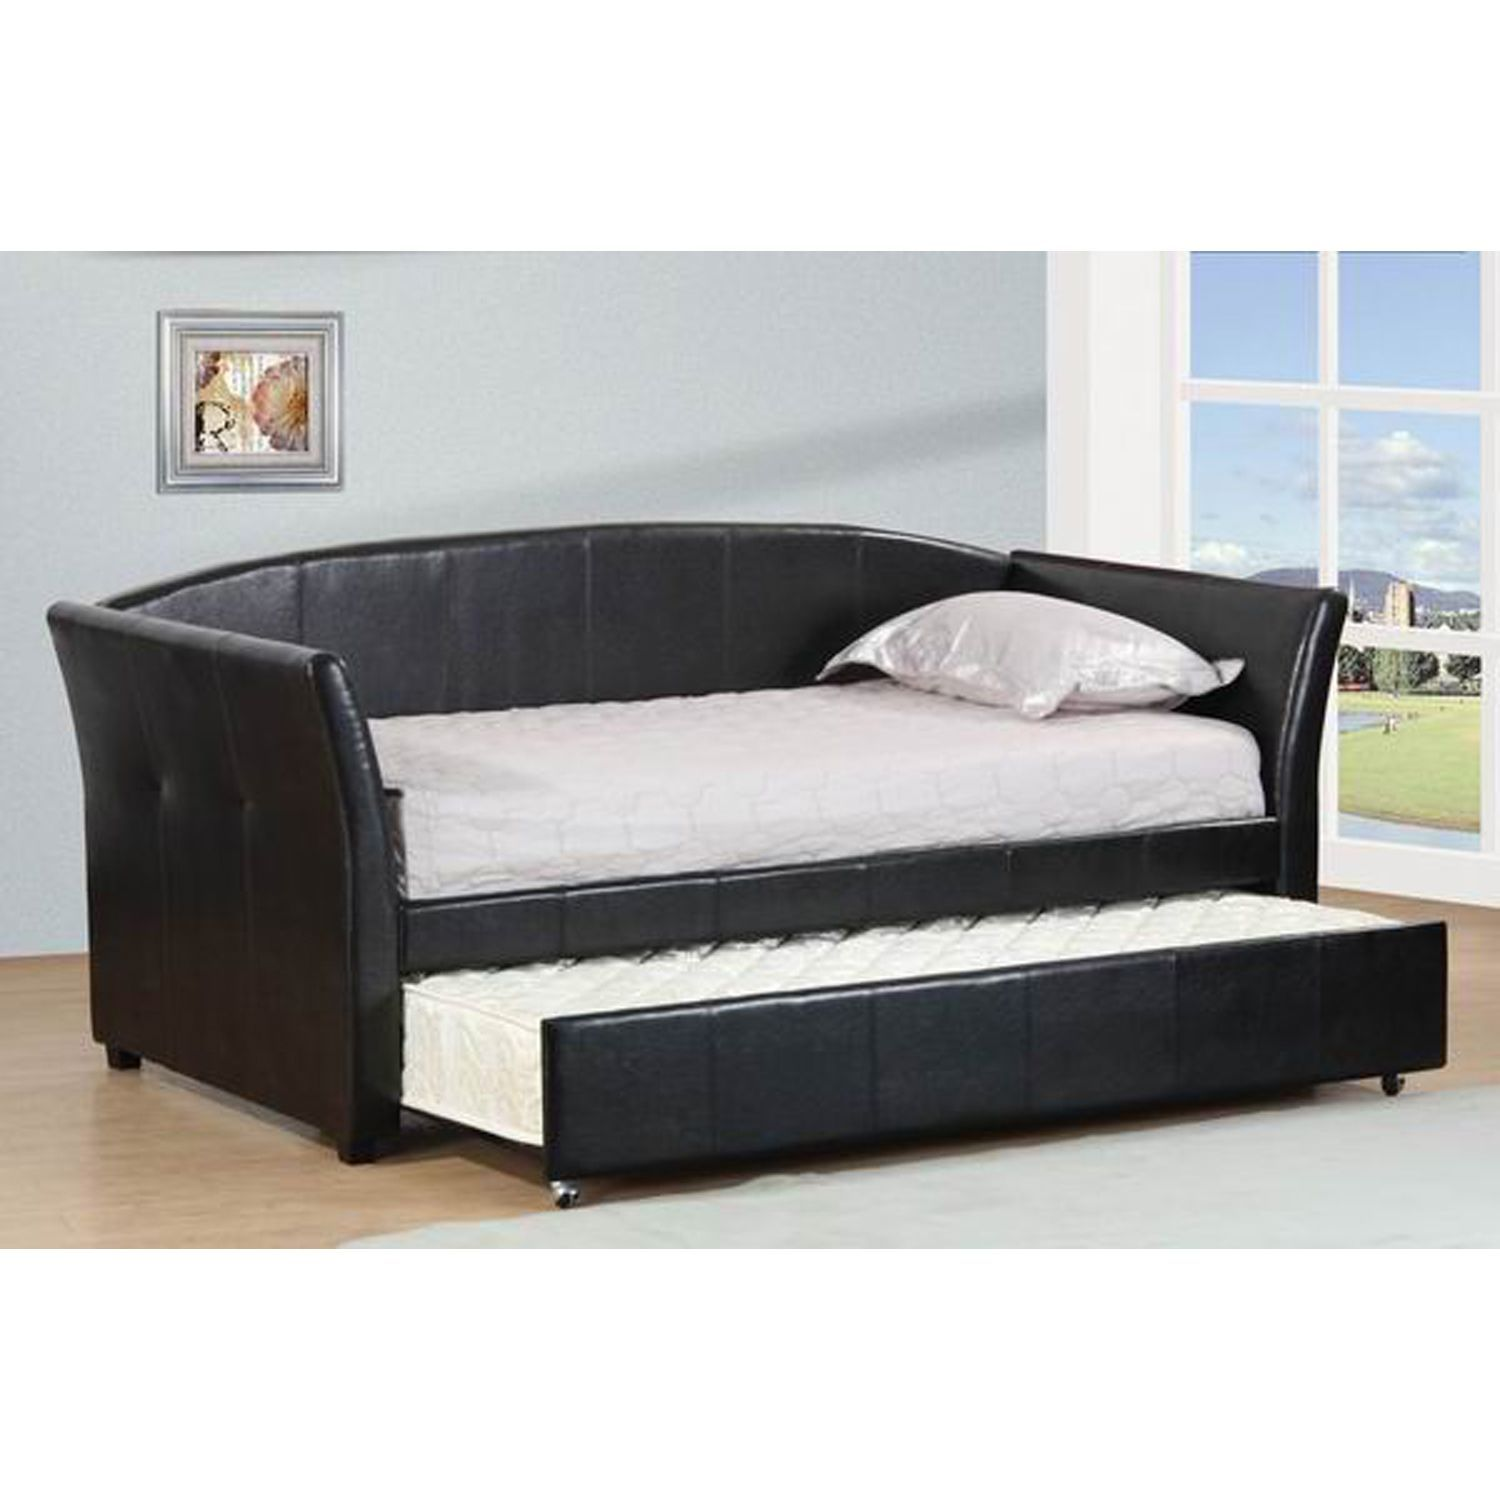 Futons That Look Like Houses Google Search Daybed With